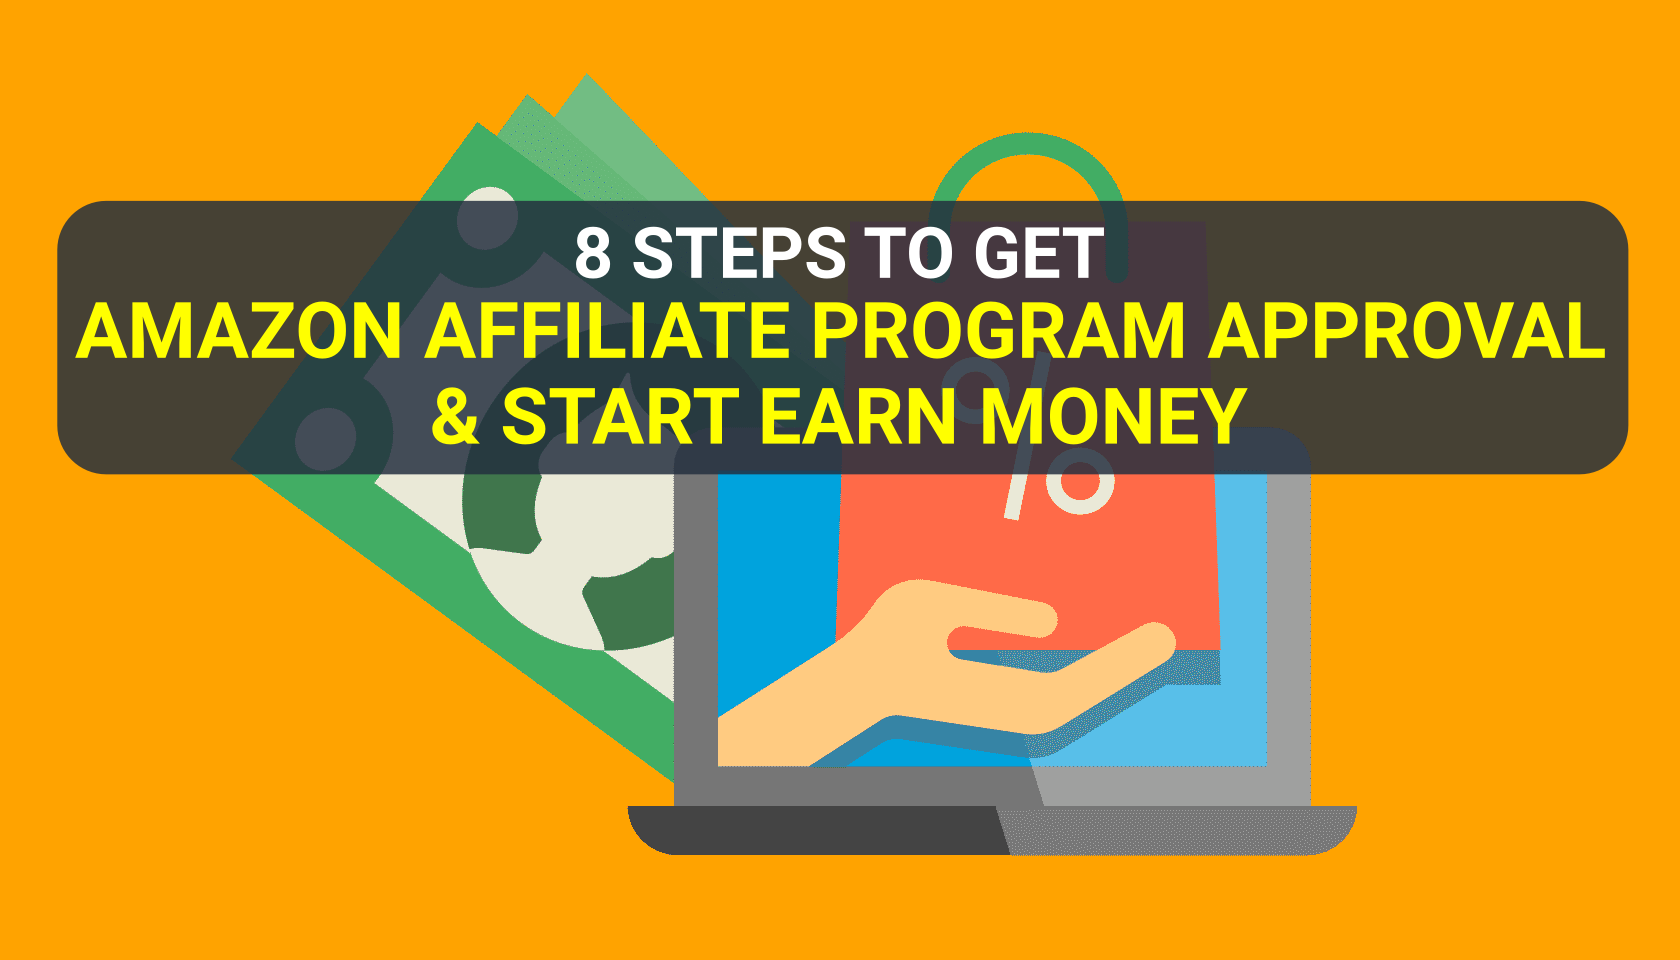 how-to-get-Amazon-Affiliate-Program-approval-account-and-earn-money-with-that